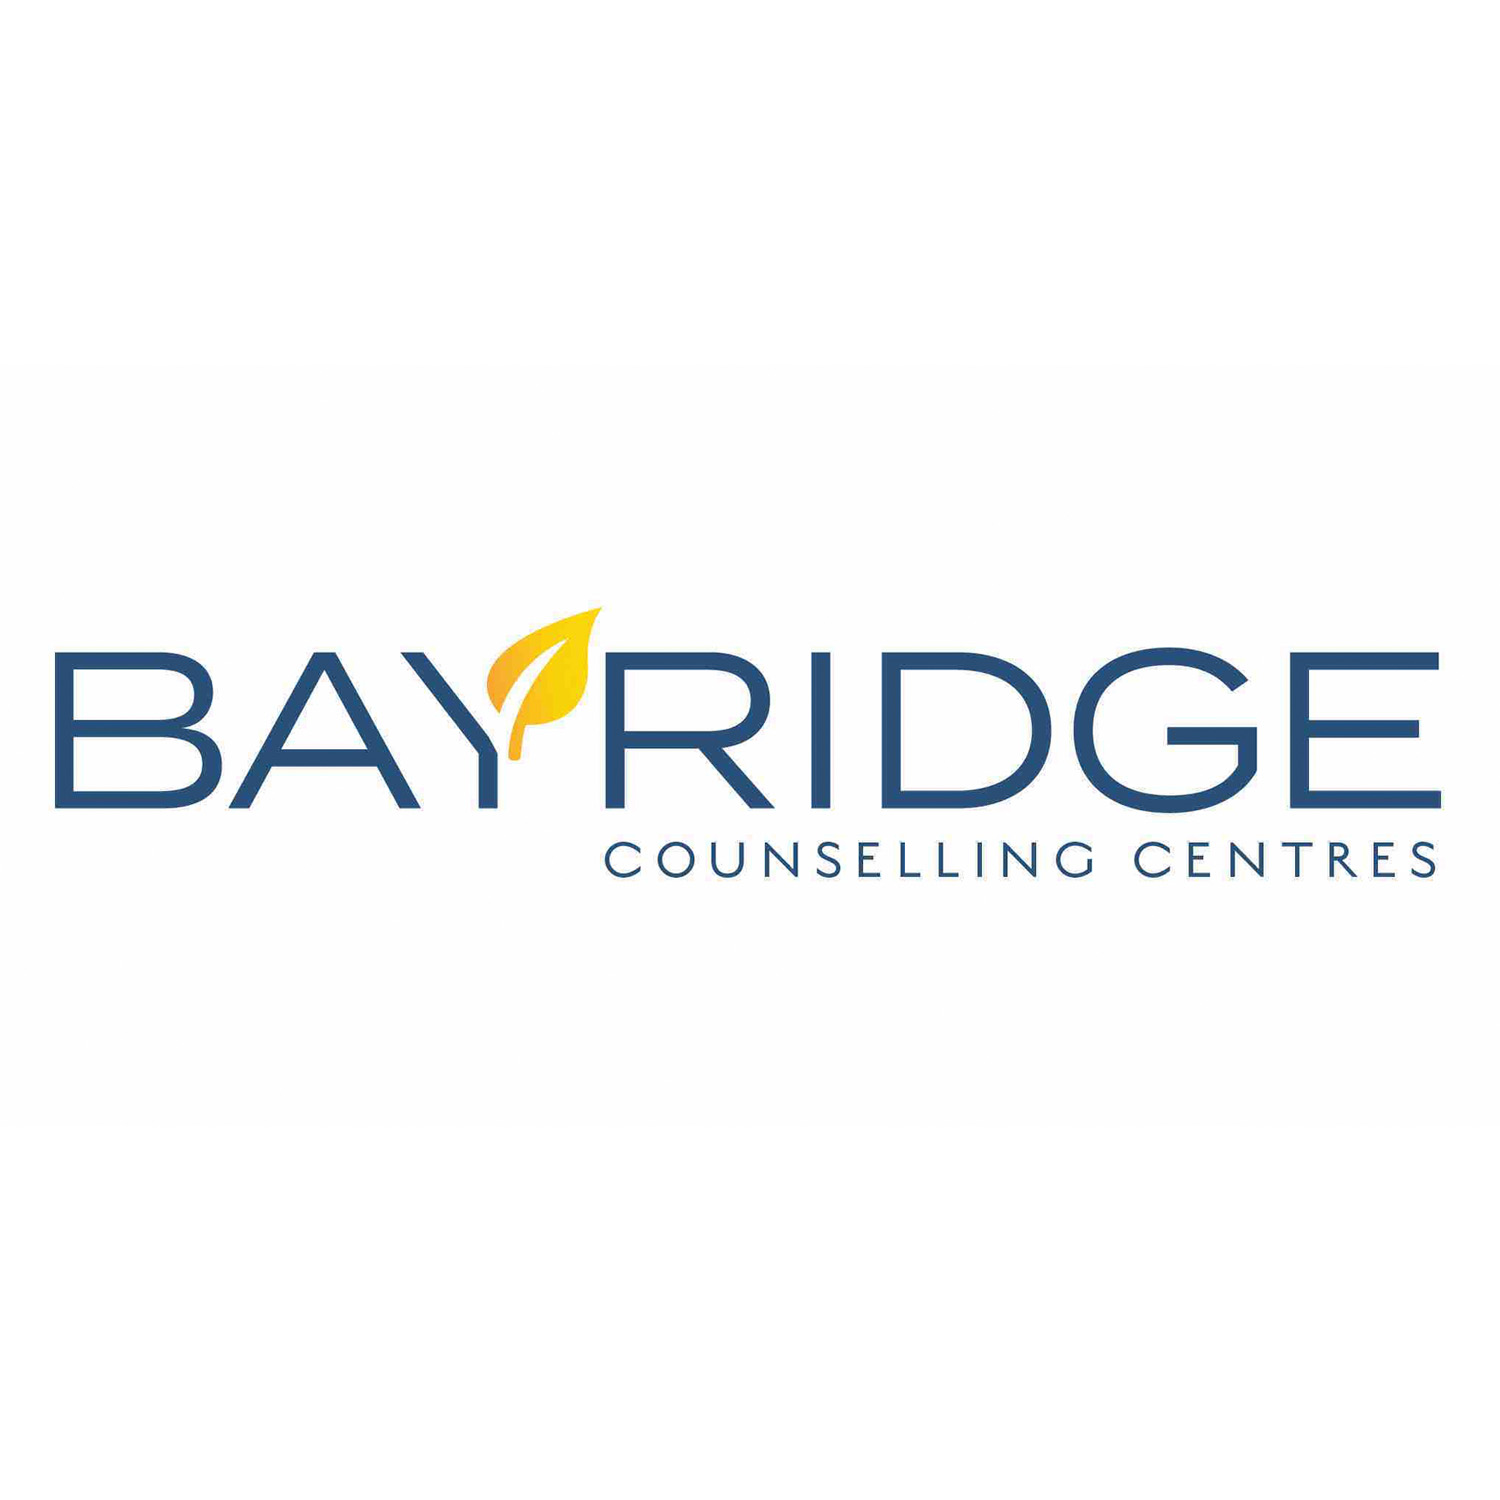 Bayridge Counselling Centre, Counselling Centre